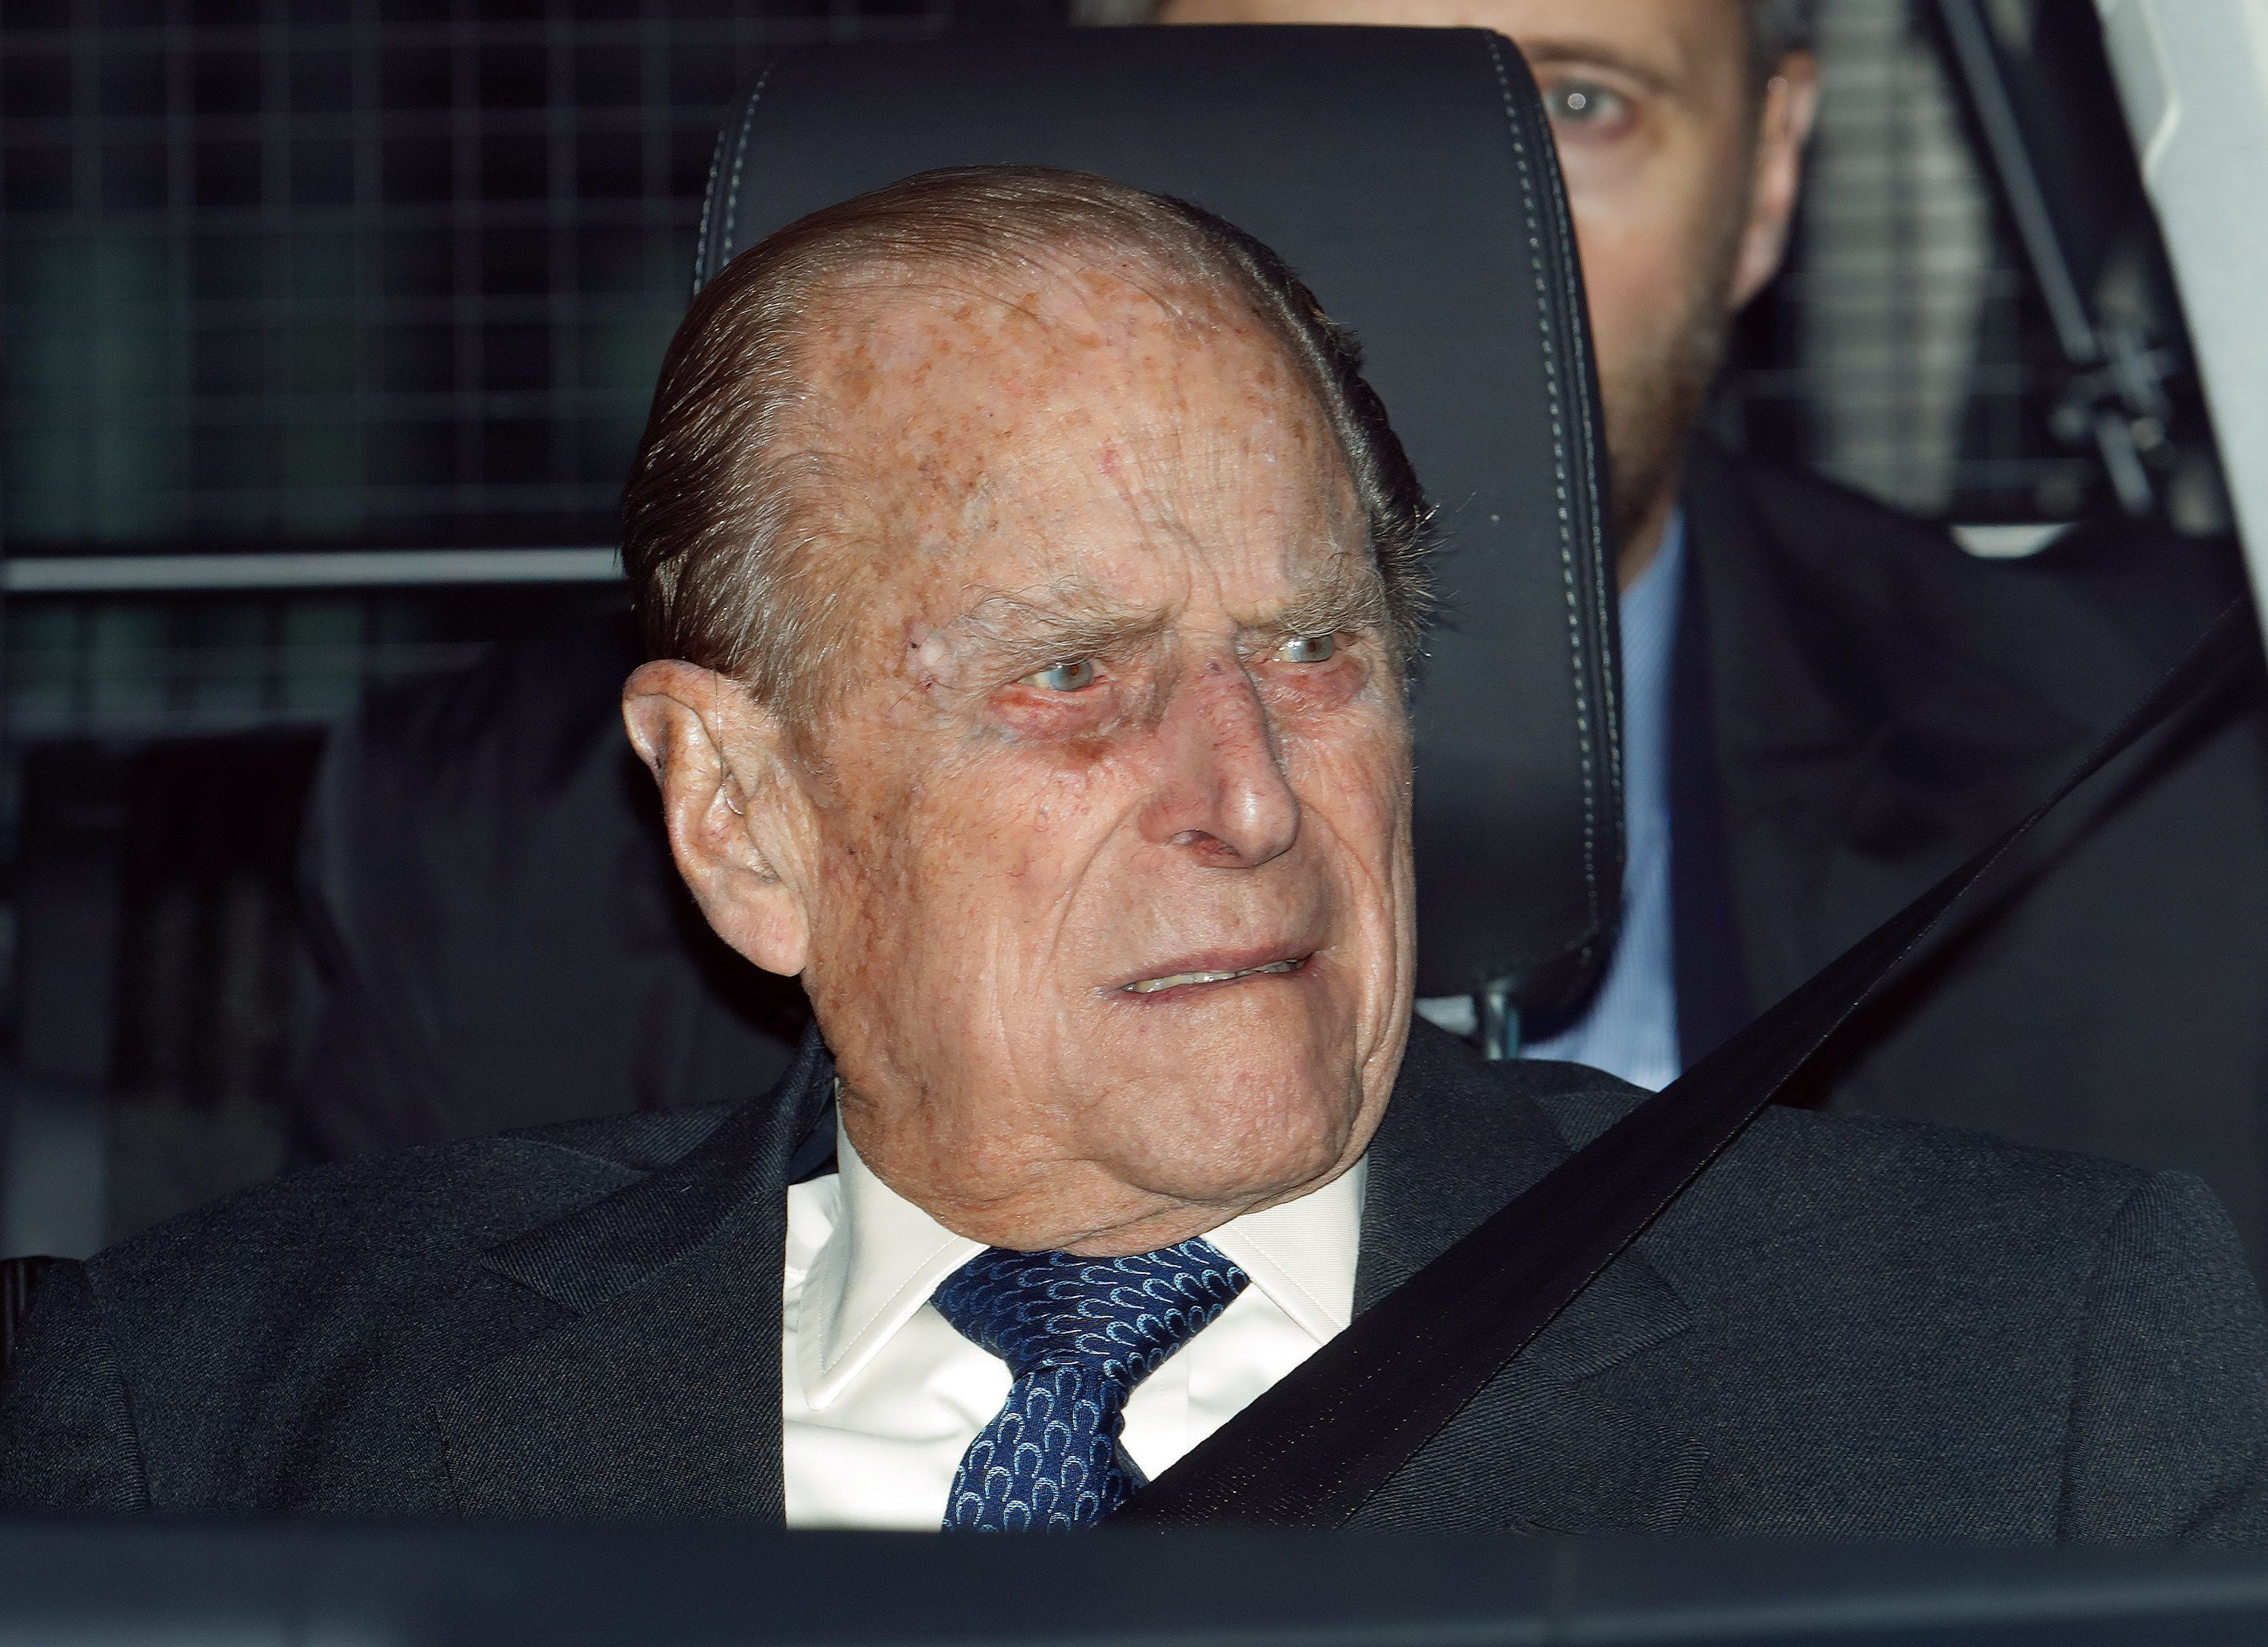 Prince Philip Surrenders His Driver's License Weeks After Crash